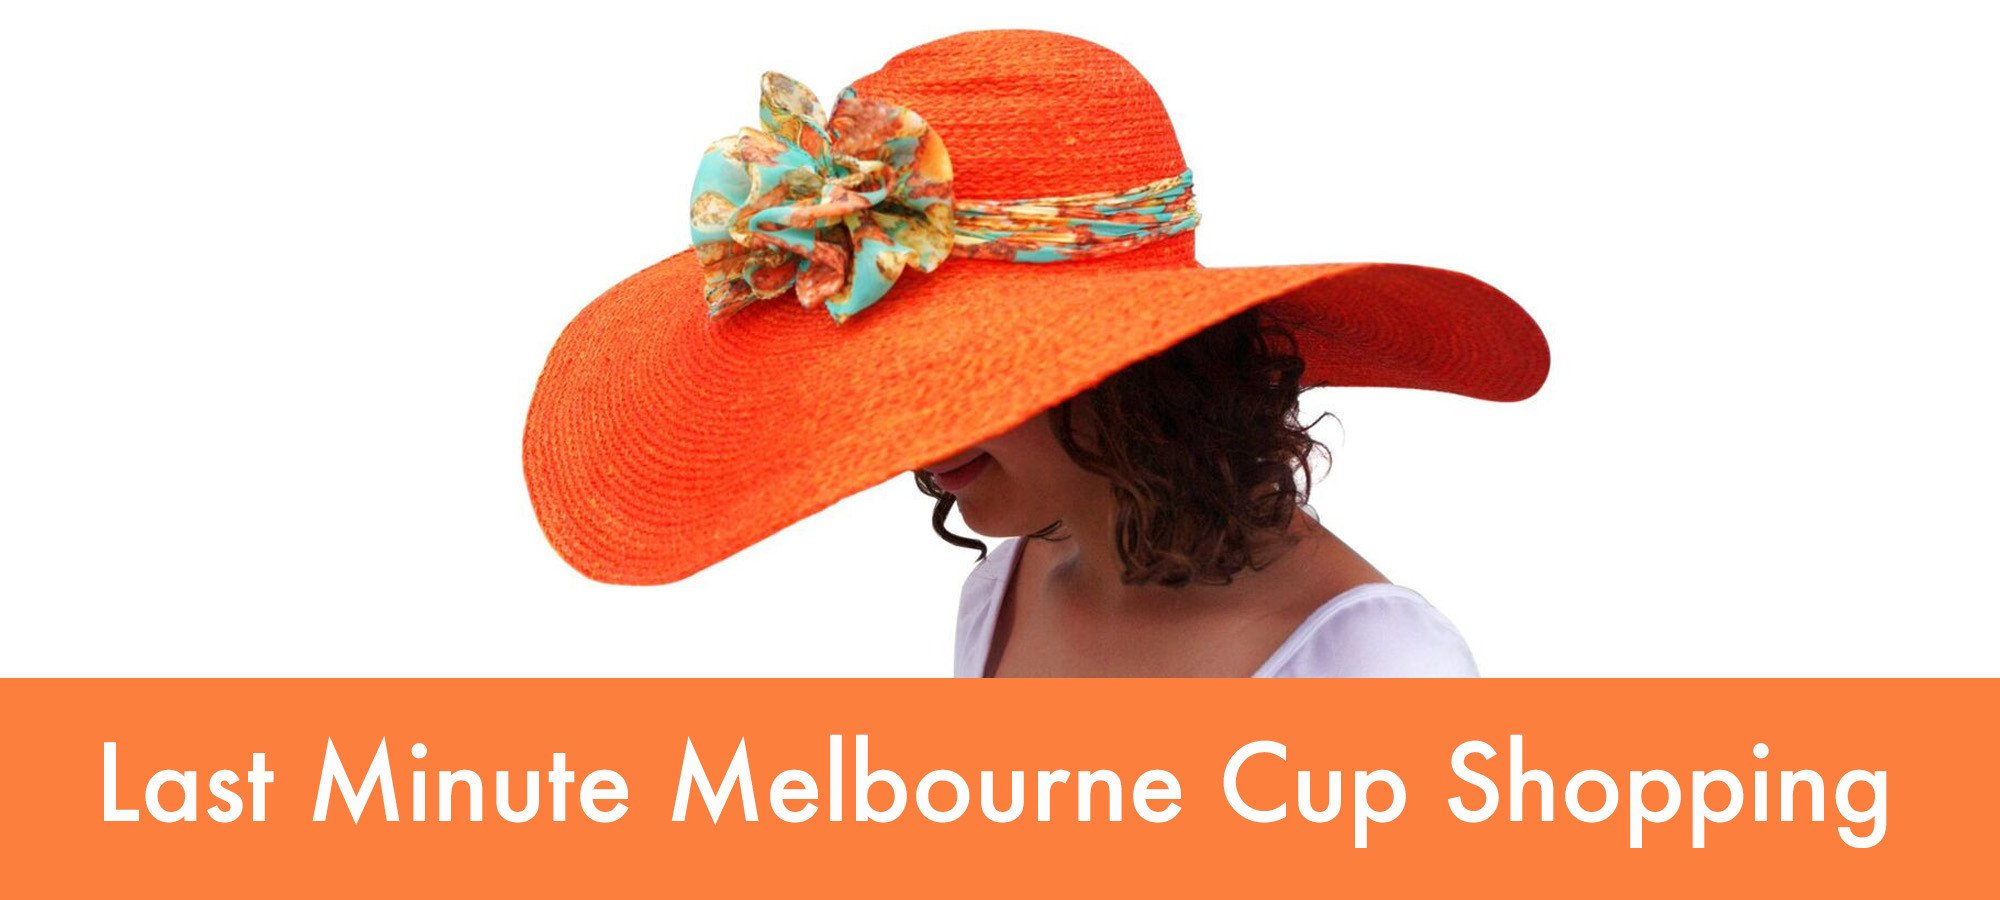 Last minute Melbourne Cup shopping